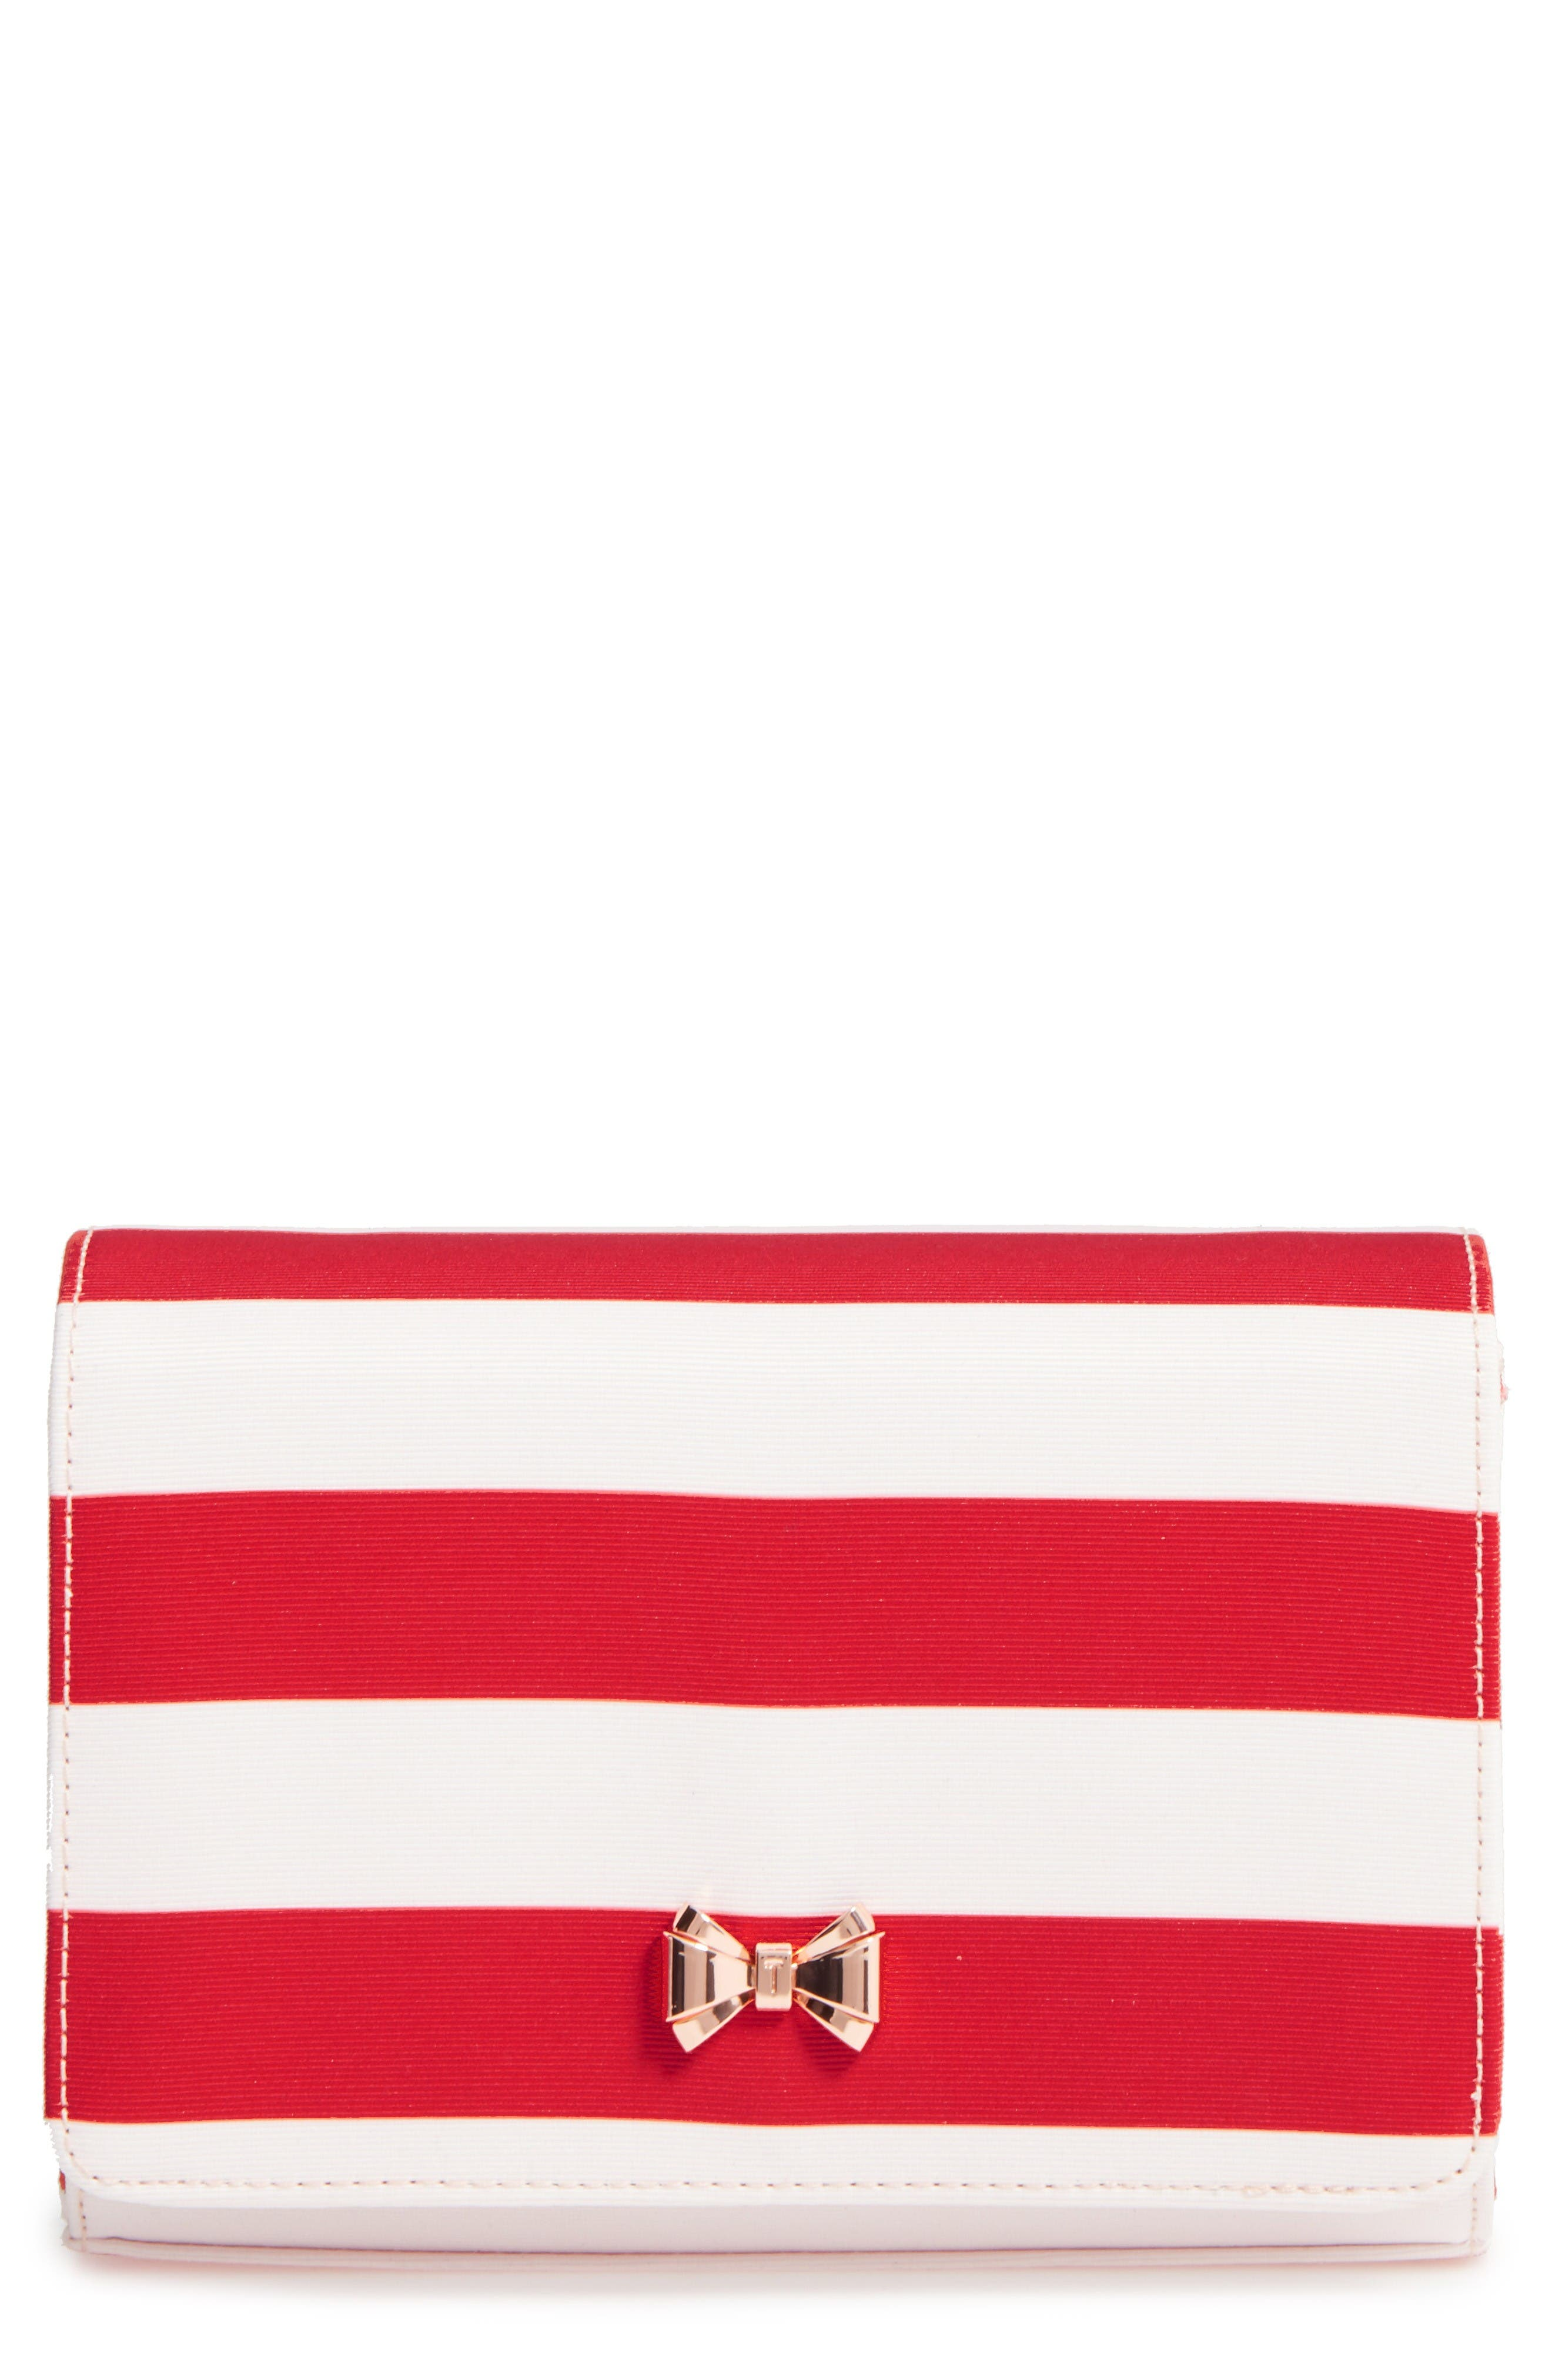 Ted Baker London Pier Stripe Clutch